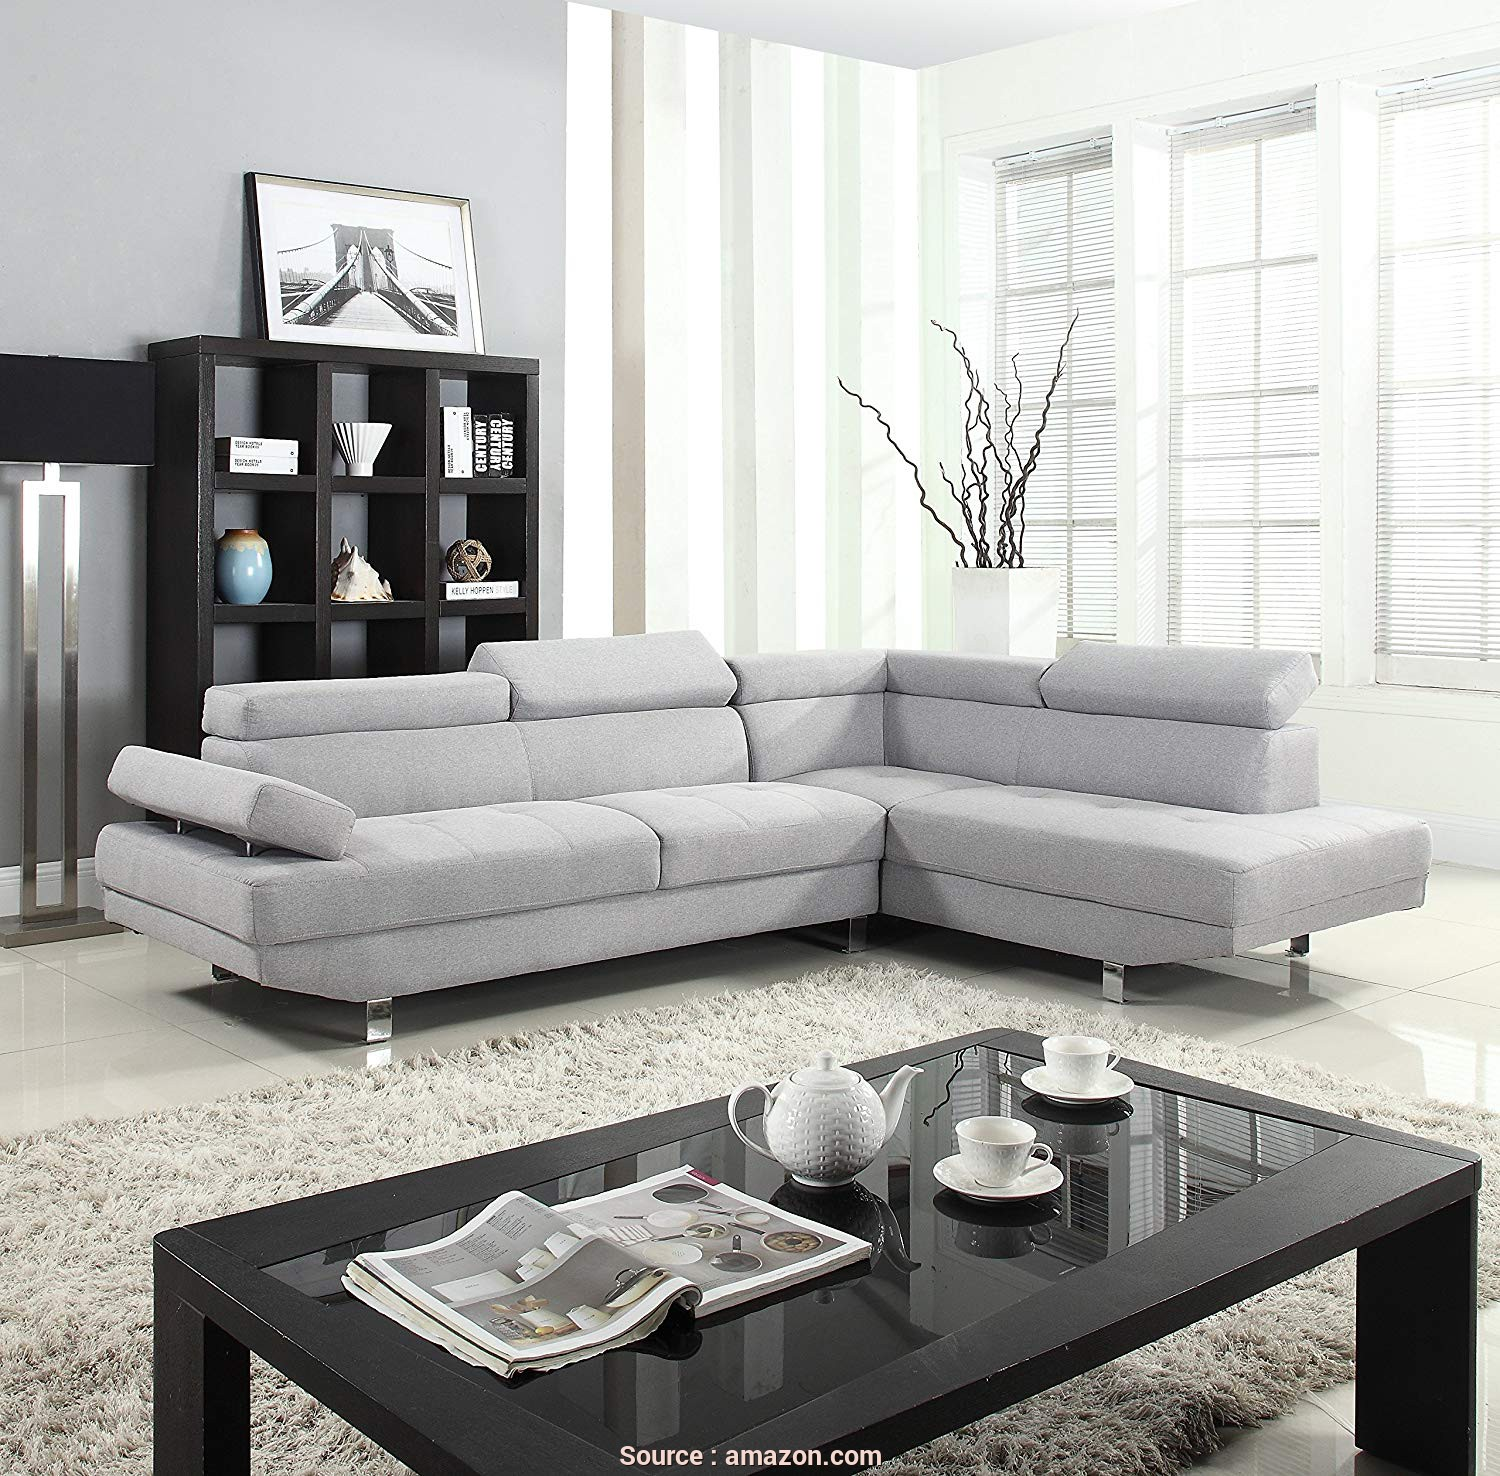 Divano Design, Cost, Buono Amazon.Com: Divano Roma Furniture Modern Contemporary Linen Sectional Sofa With Adjustable,, Light Grey: Kitchen & Dining